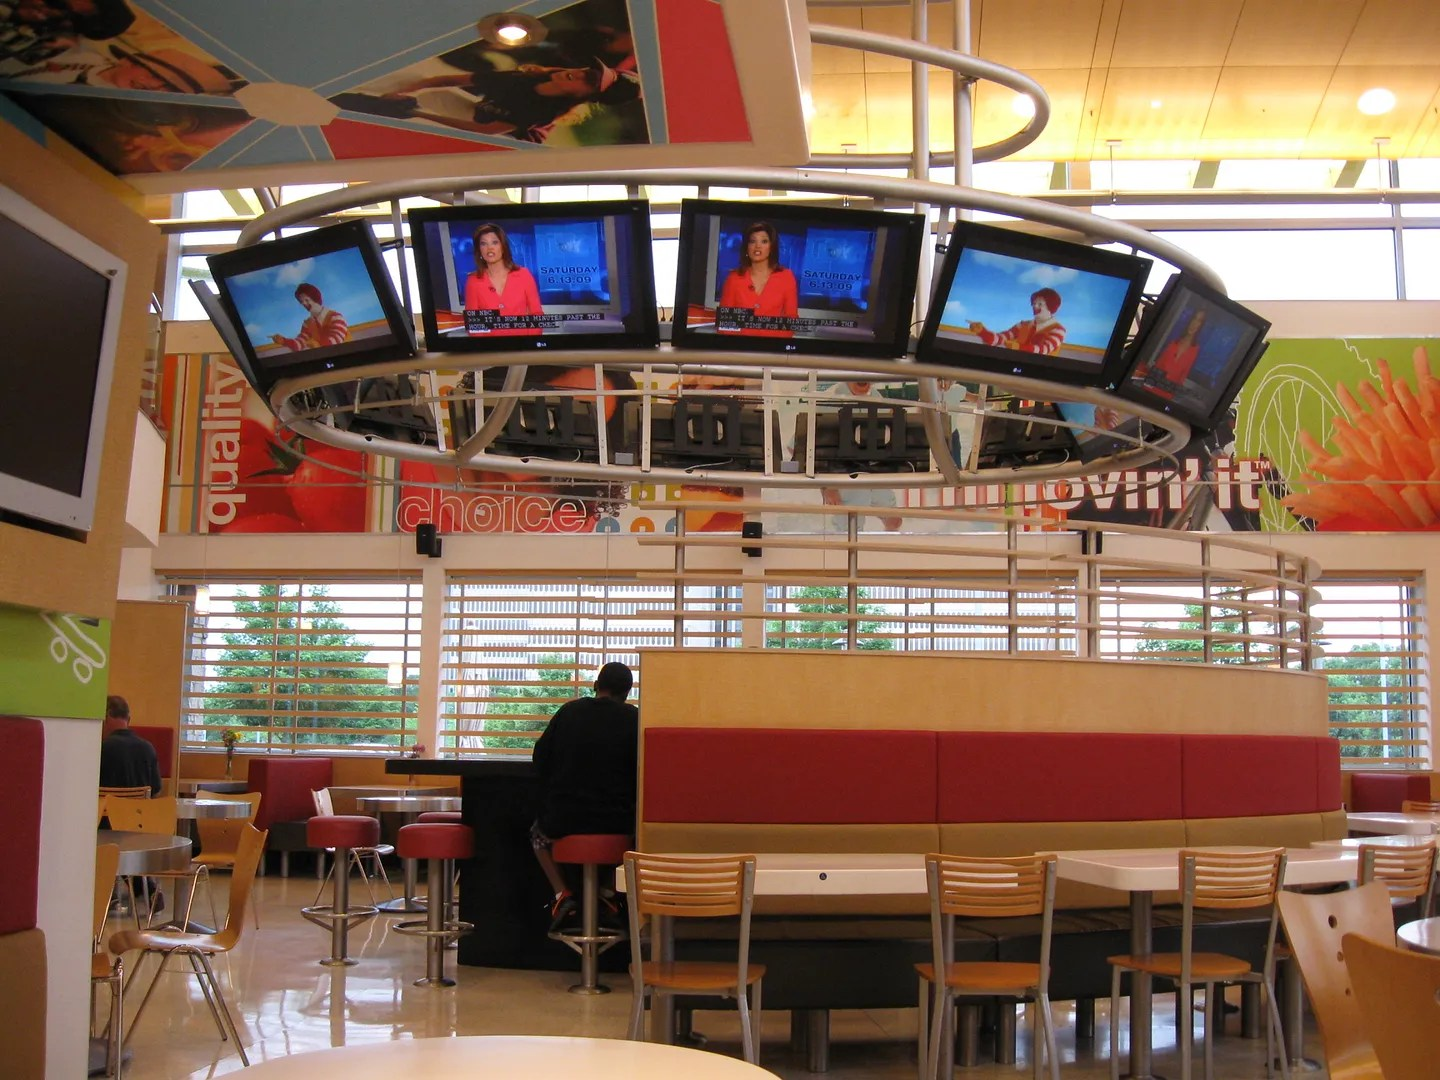 McDonald's lobby, Illinois